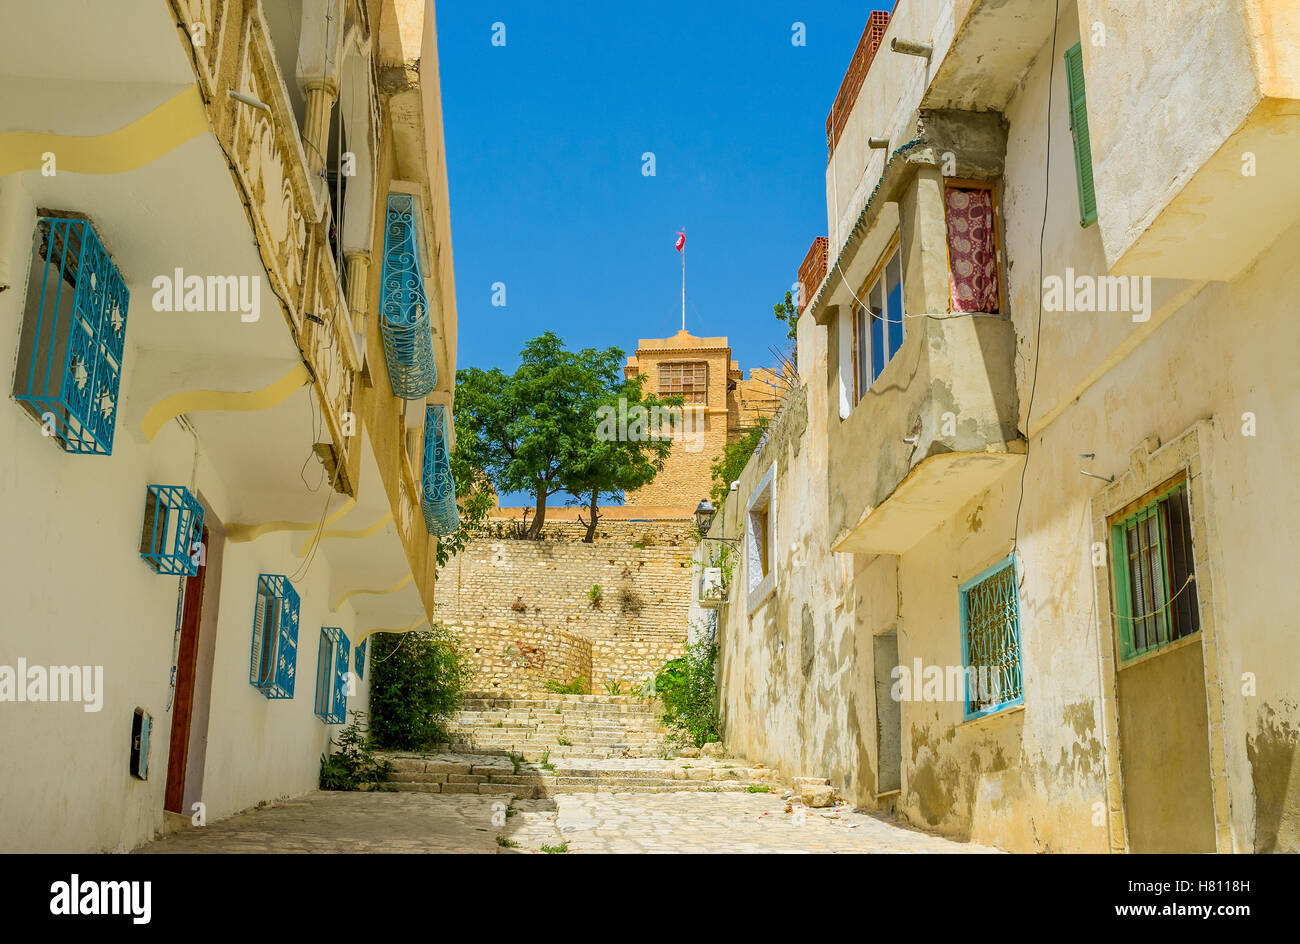 The hilly street with the high ramparts of the local Kasbah, the old fortress with preserved castle, El Kef, Tunisia. - Stock Image